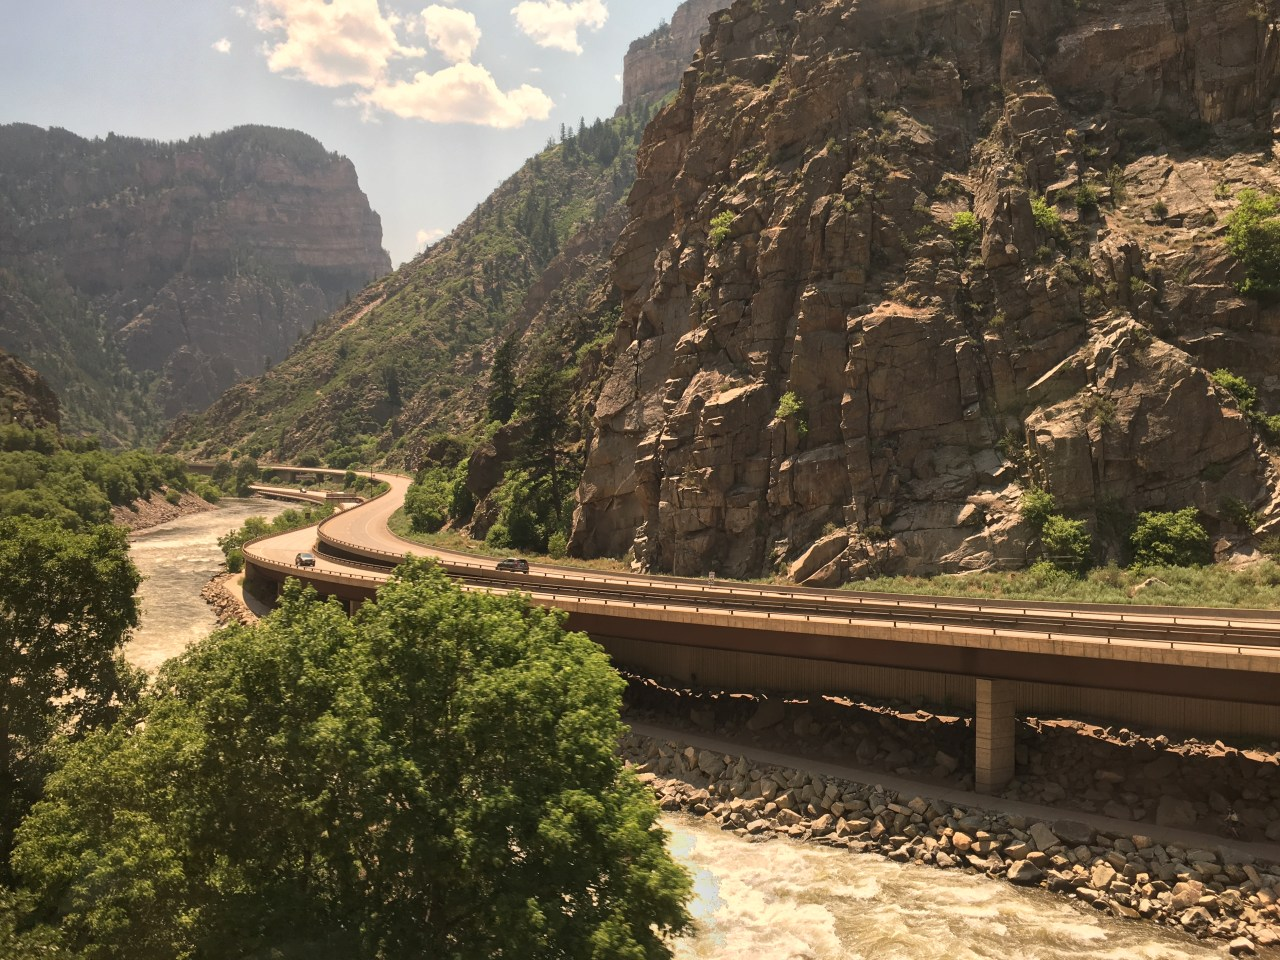 Railroad, Colorado River, and I70 heading west through the Rocky Mountains